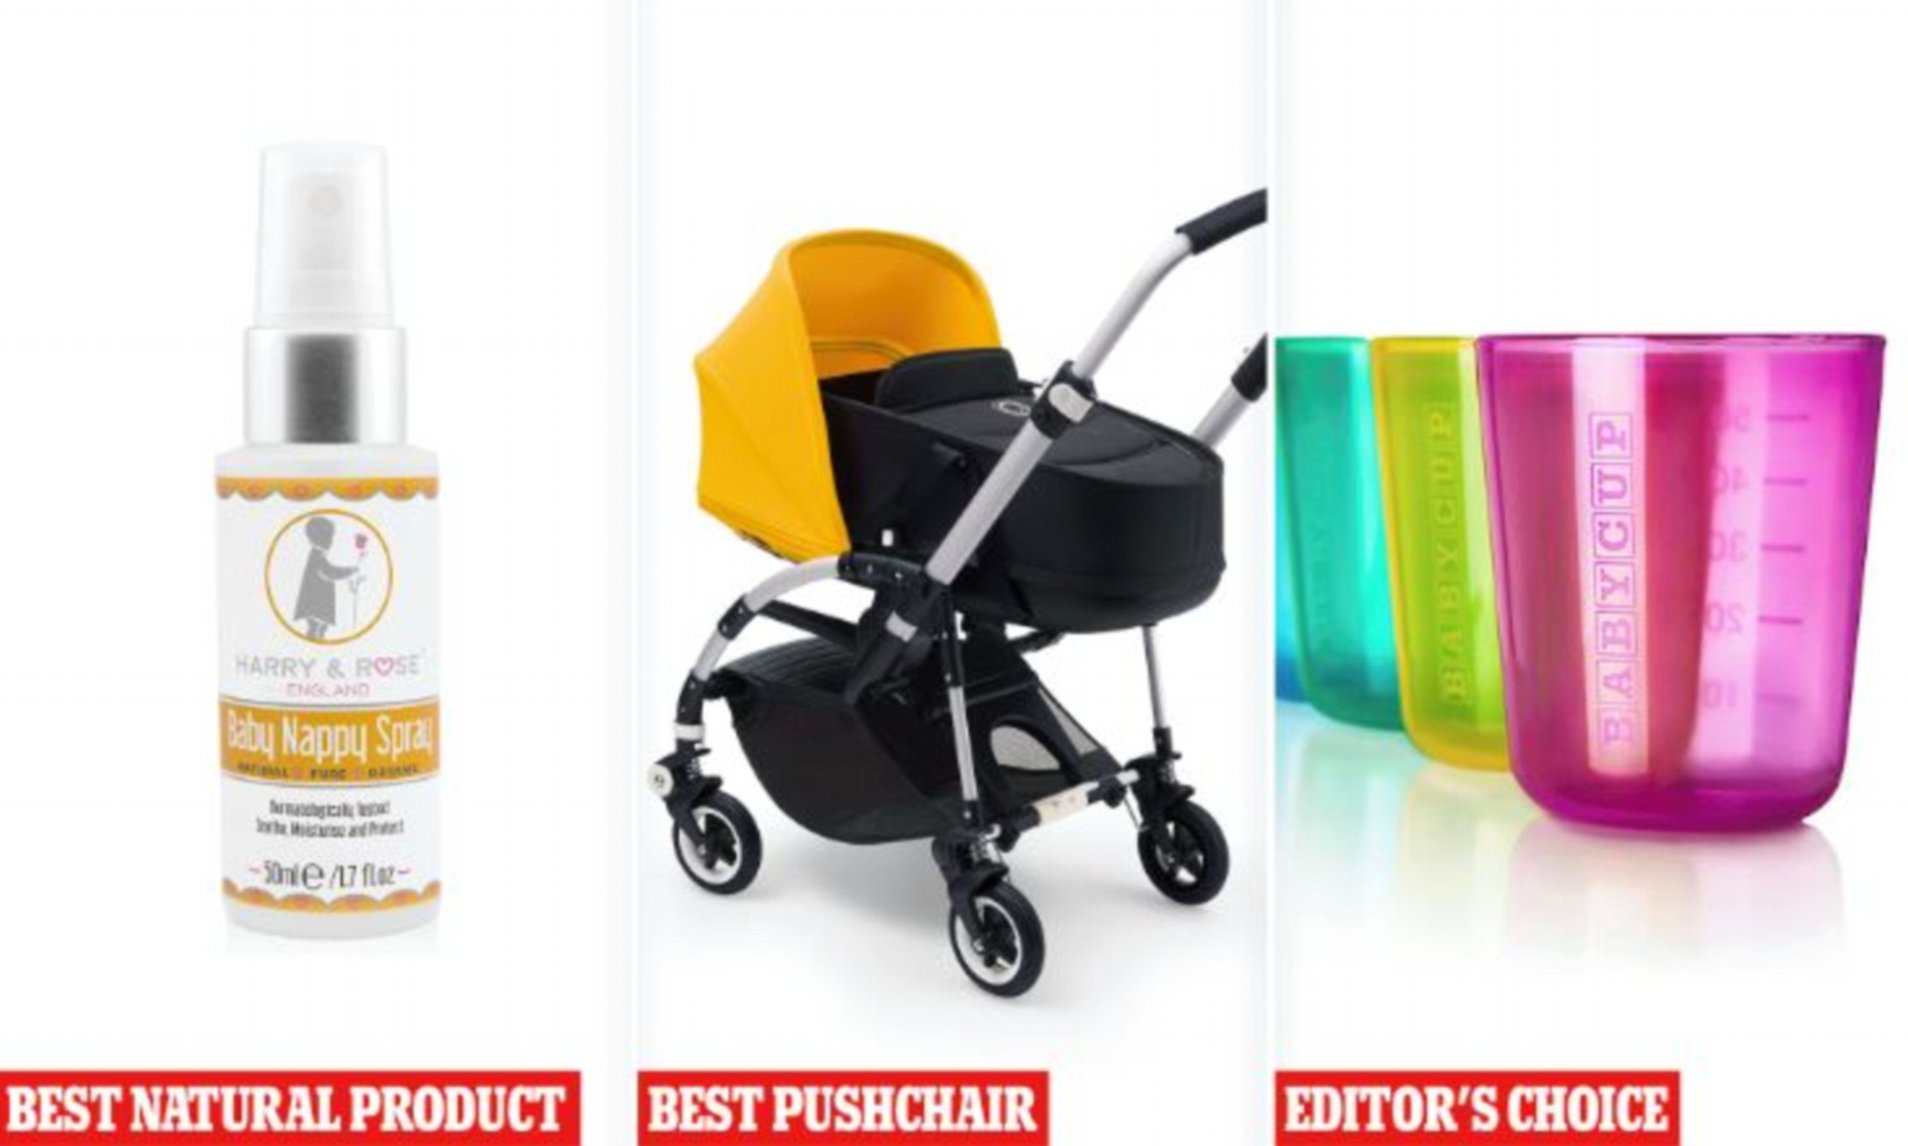 Best Newborn Prams Australia 2018 The Winners Of The Madeformums Product Awards 2018 Revealed